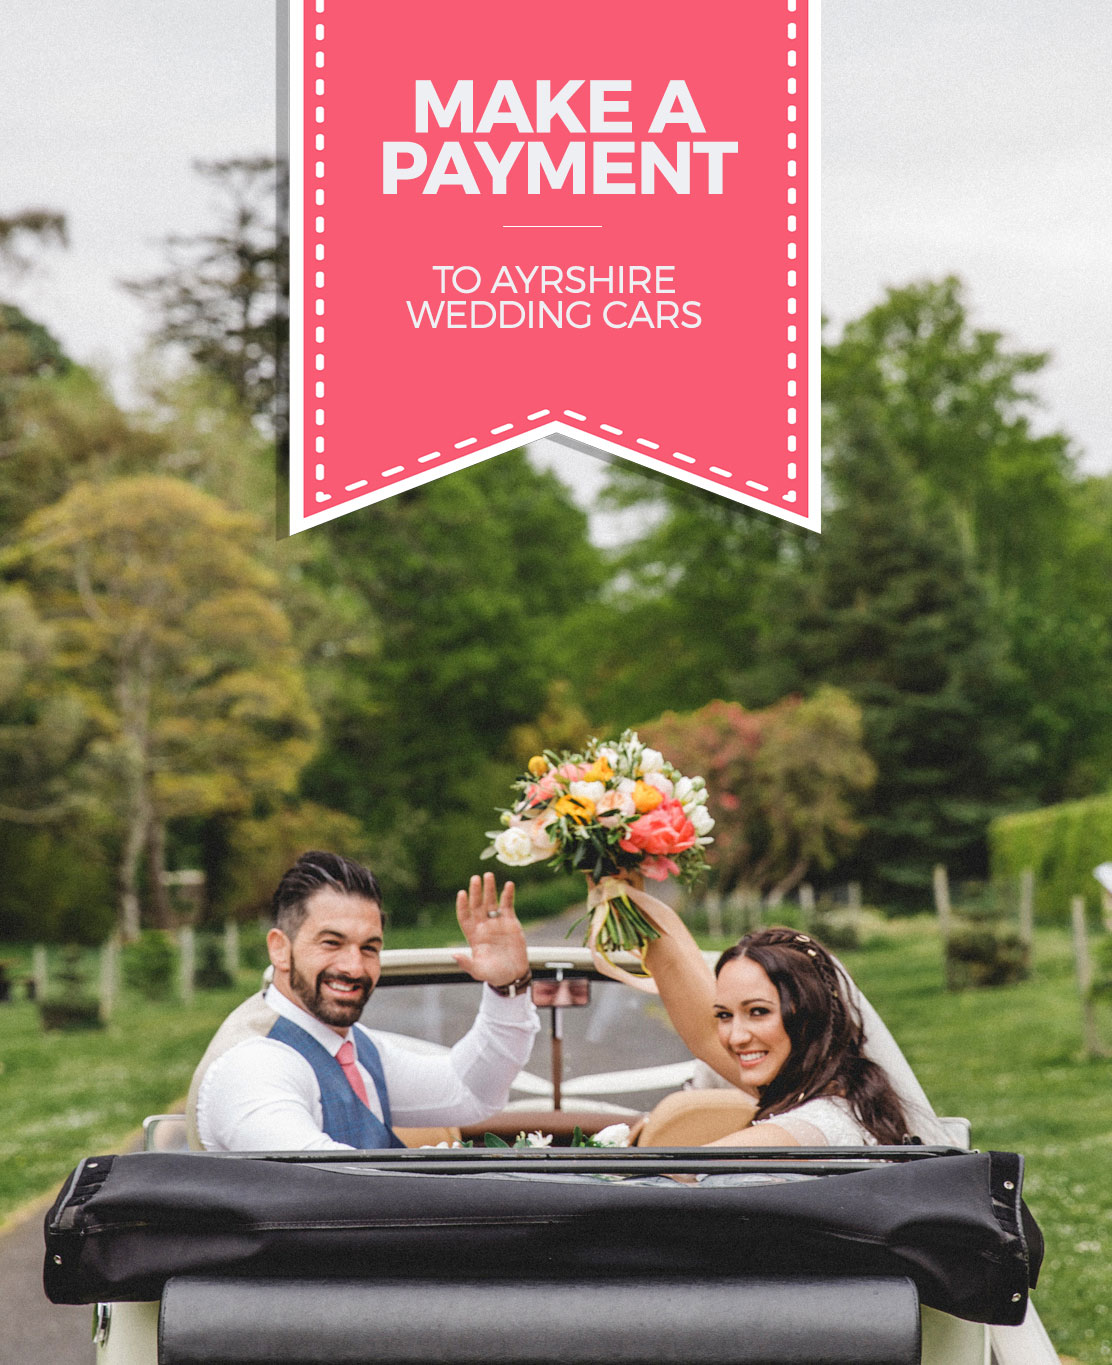 make a payment to ayrshire wedding cars